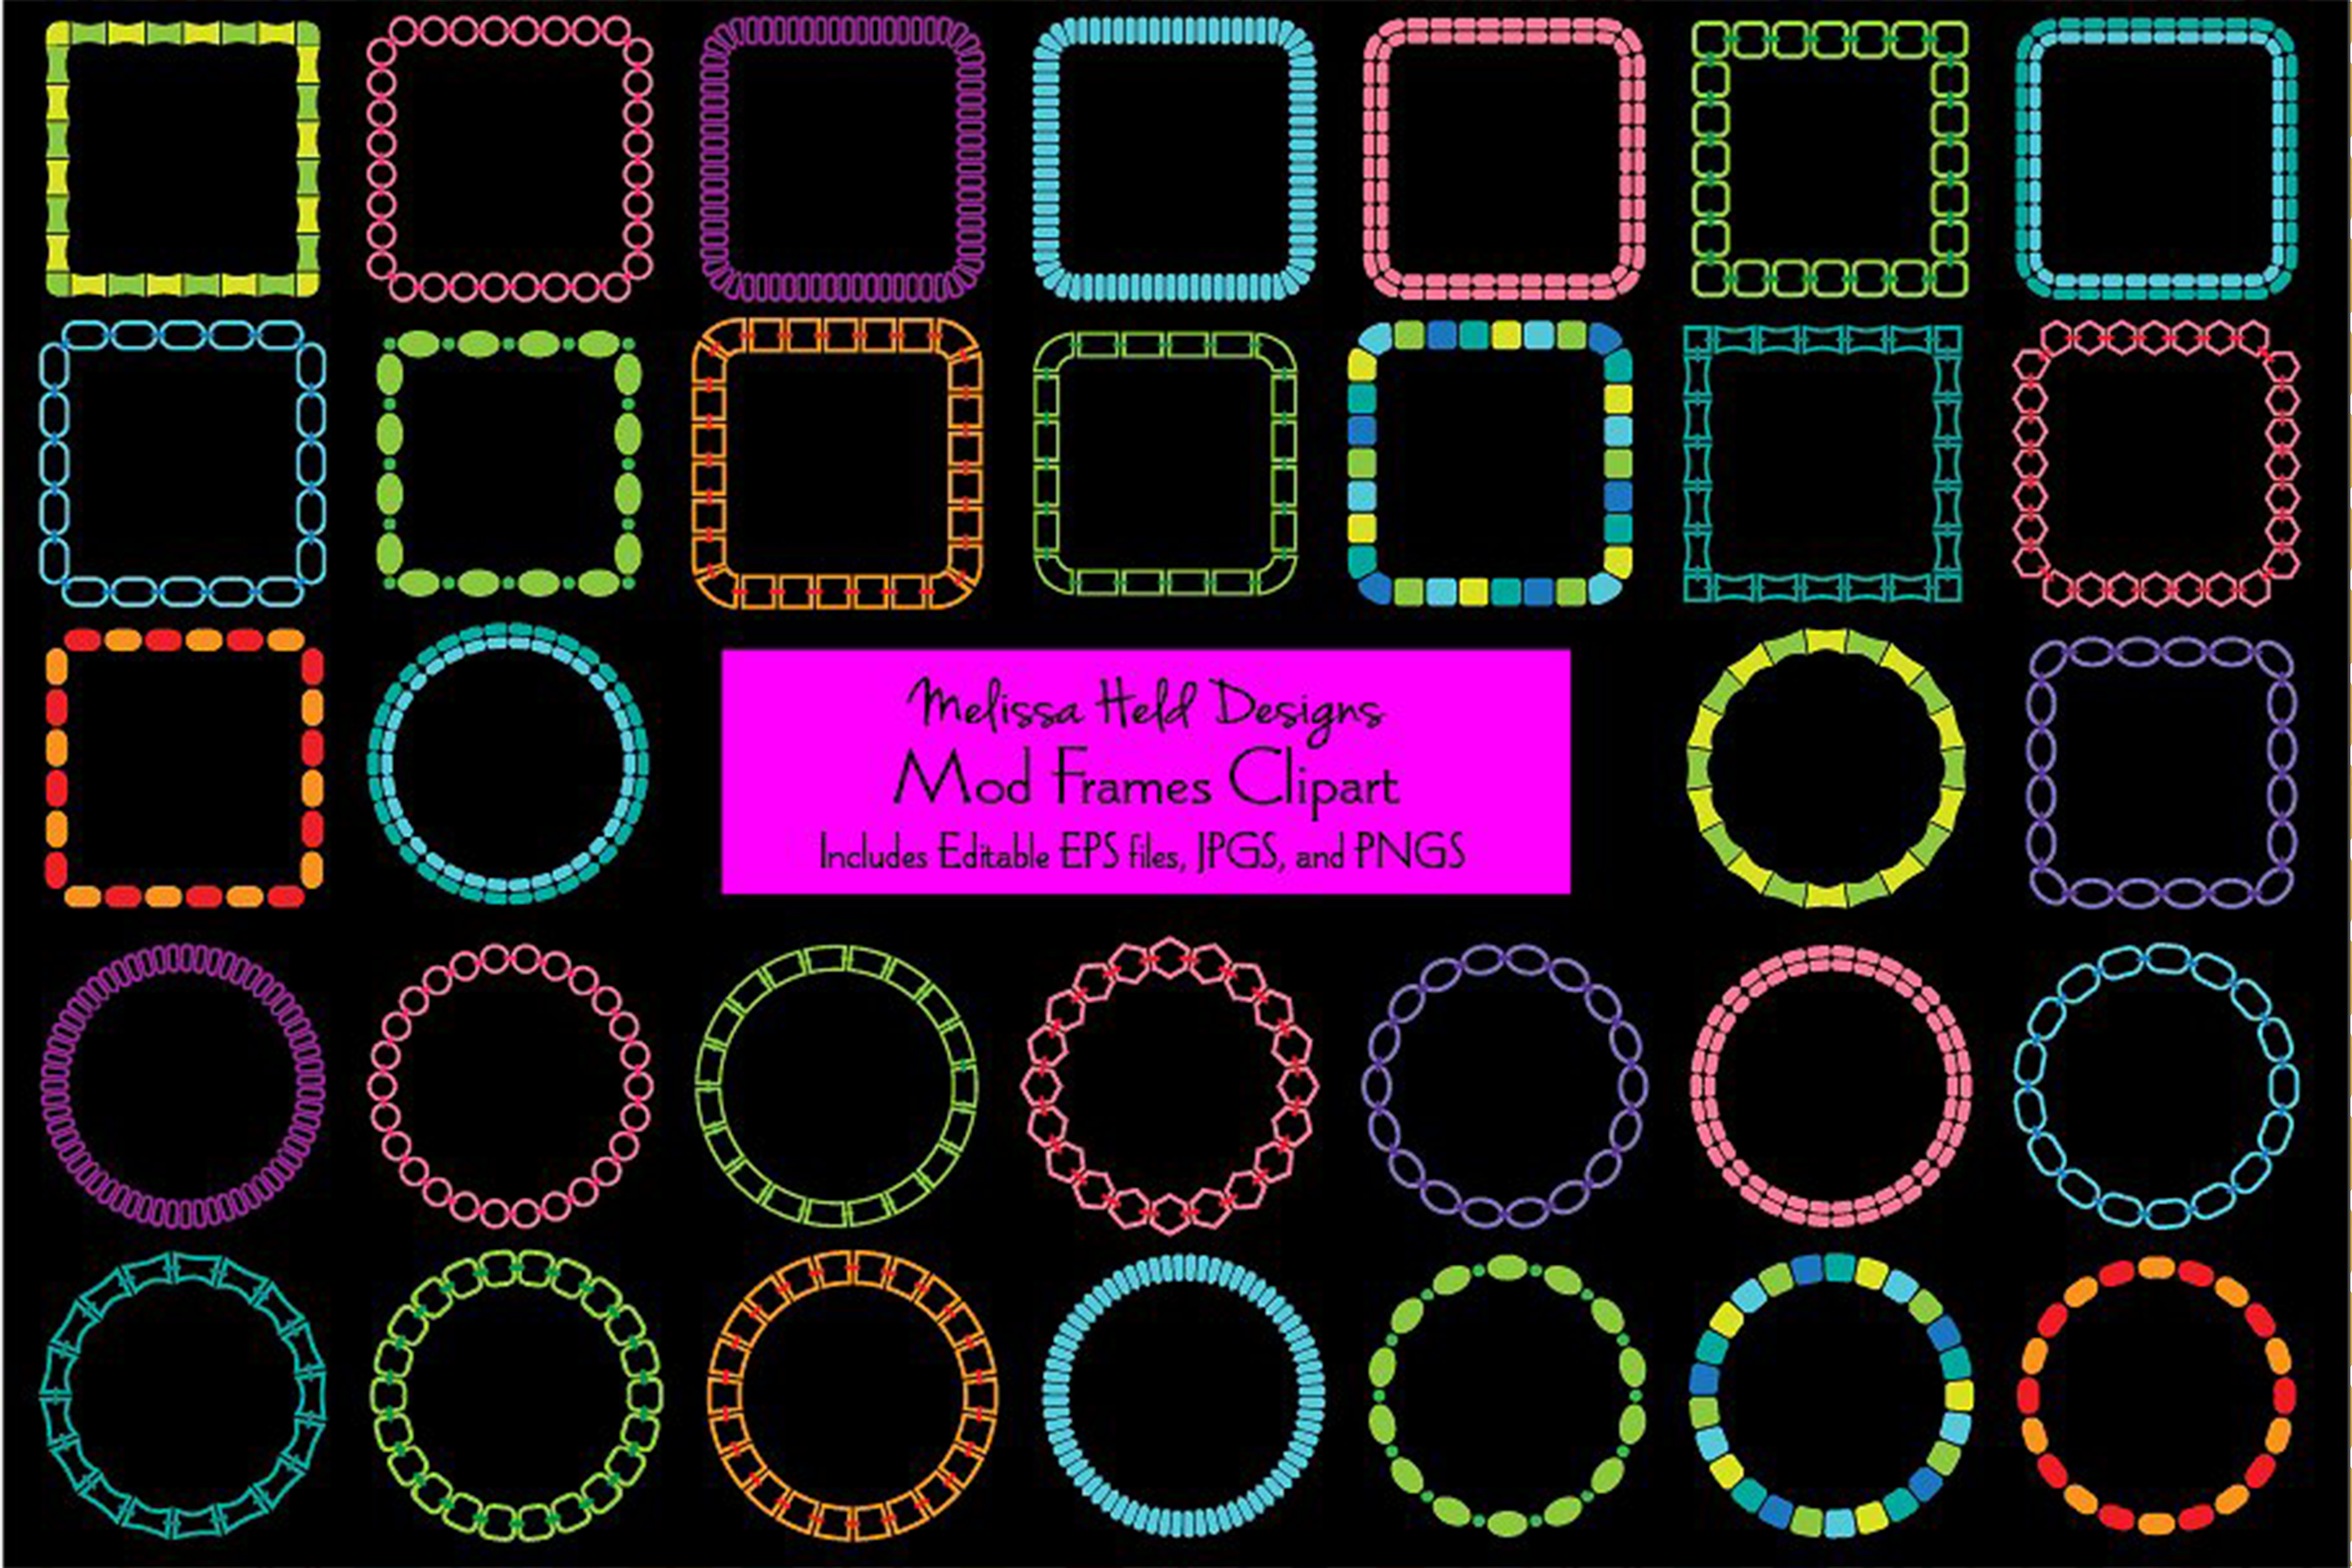 Mod Frames Clipart example image 1